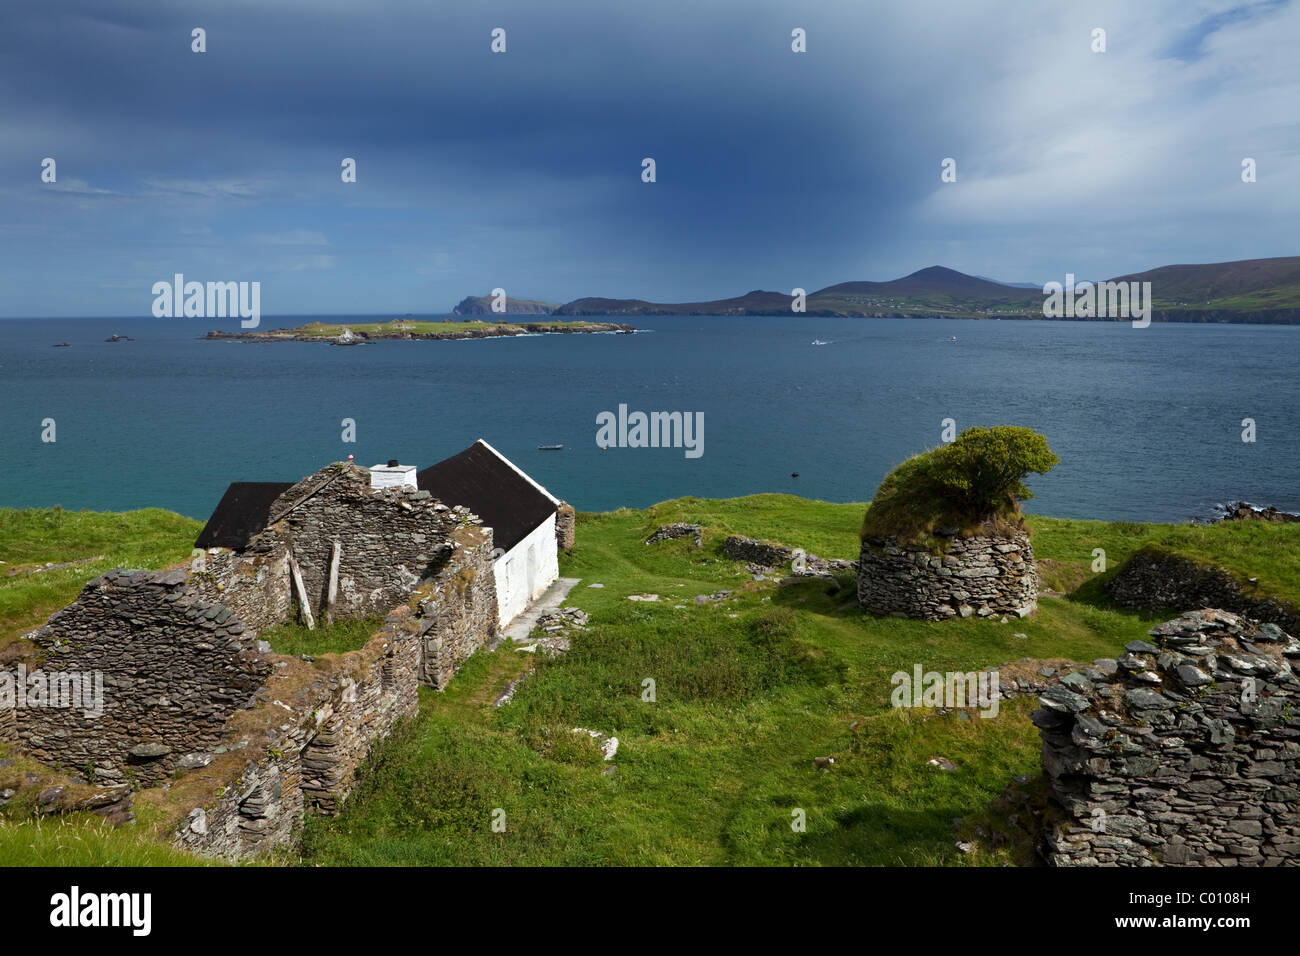 Restored and Evacuated Cottages on Great Blasket Island, Blasket Islands, Dingle Peninsula, County Kerry, Ireland Stock Photo